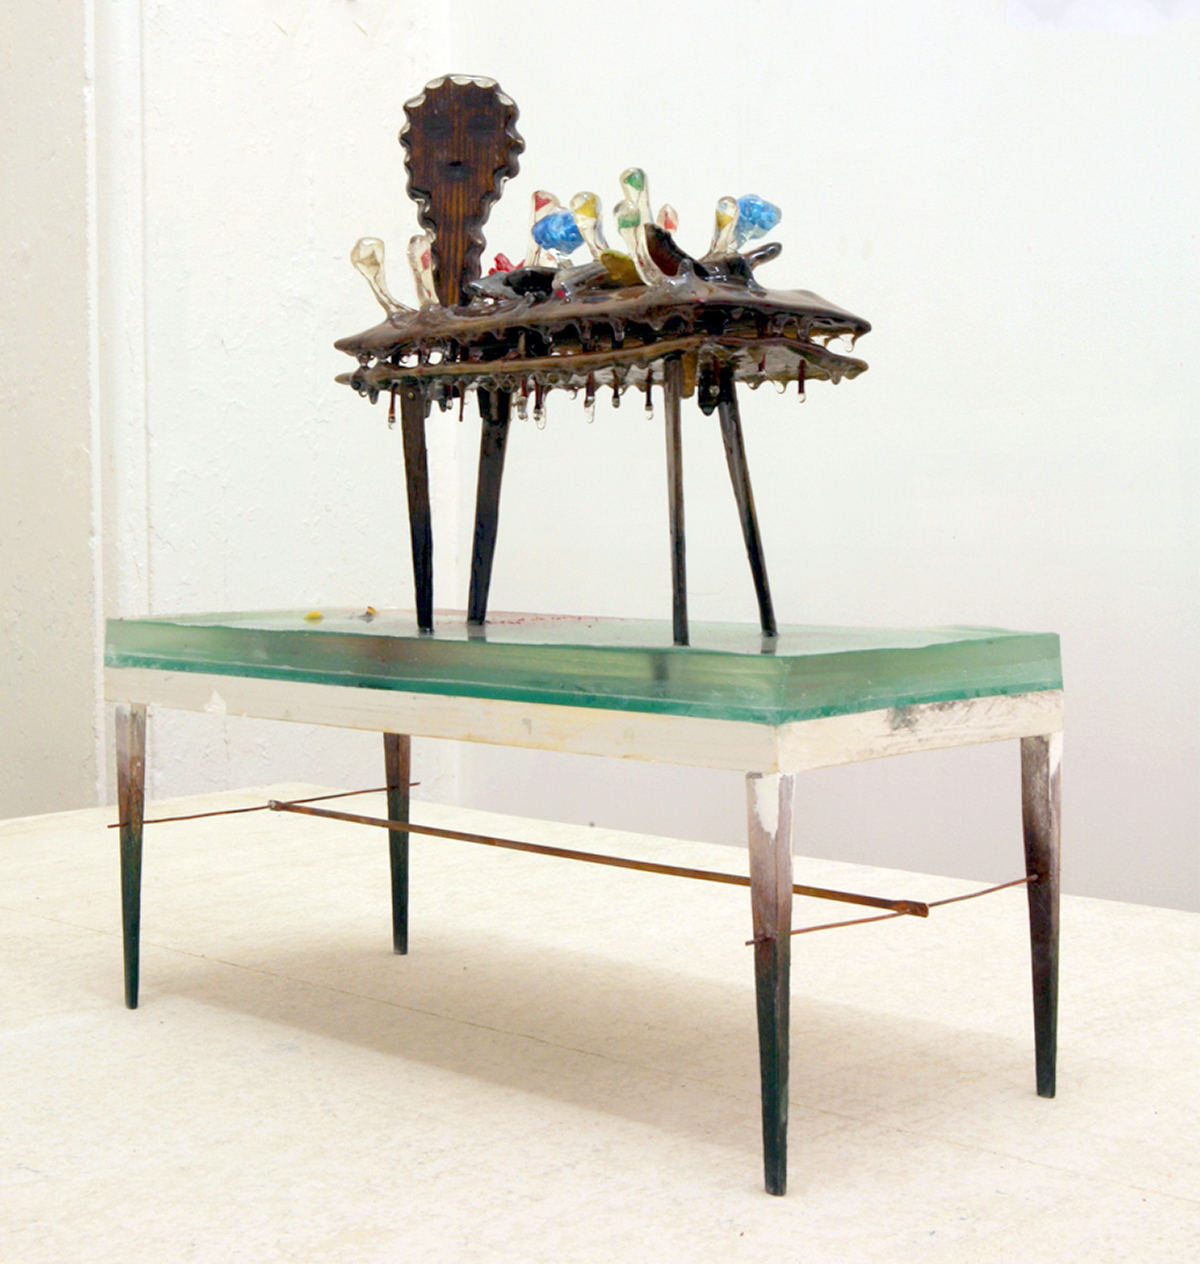 Han Jinsu 2018